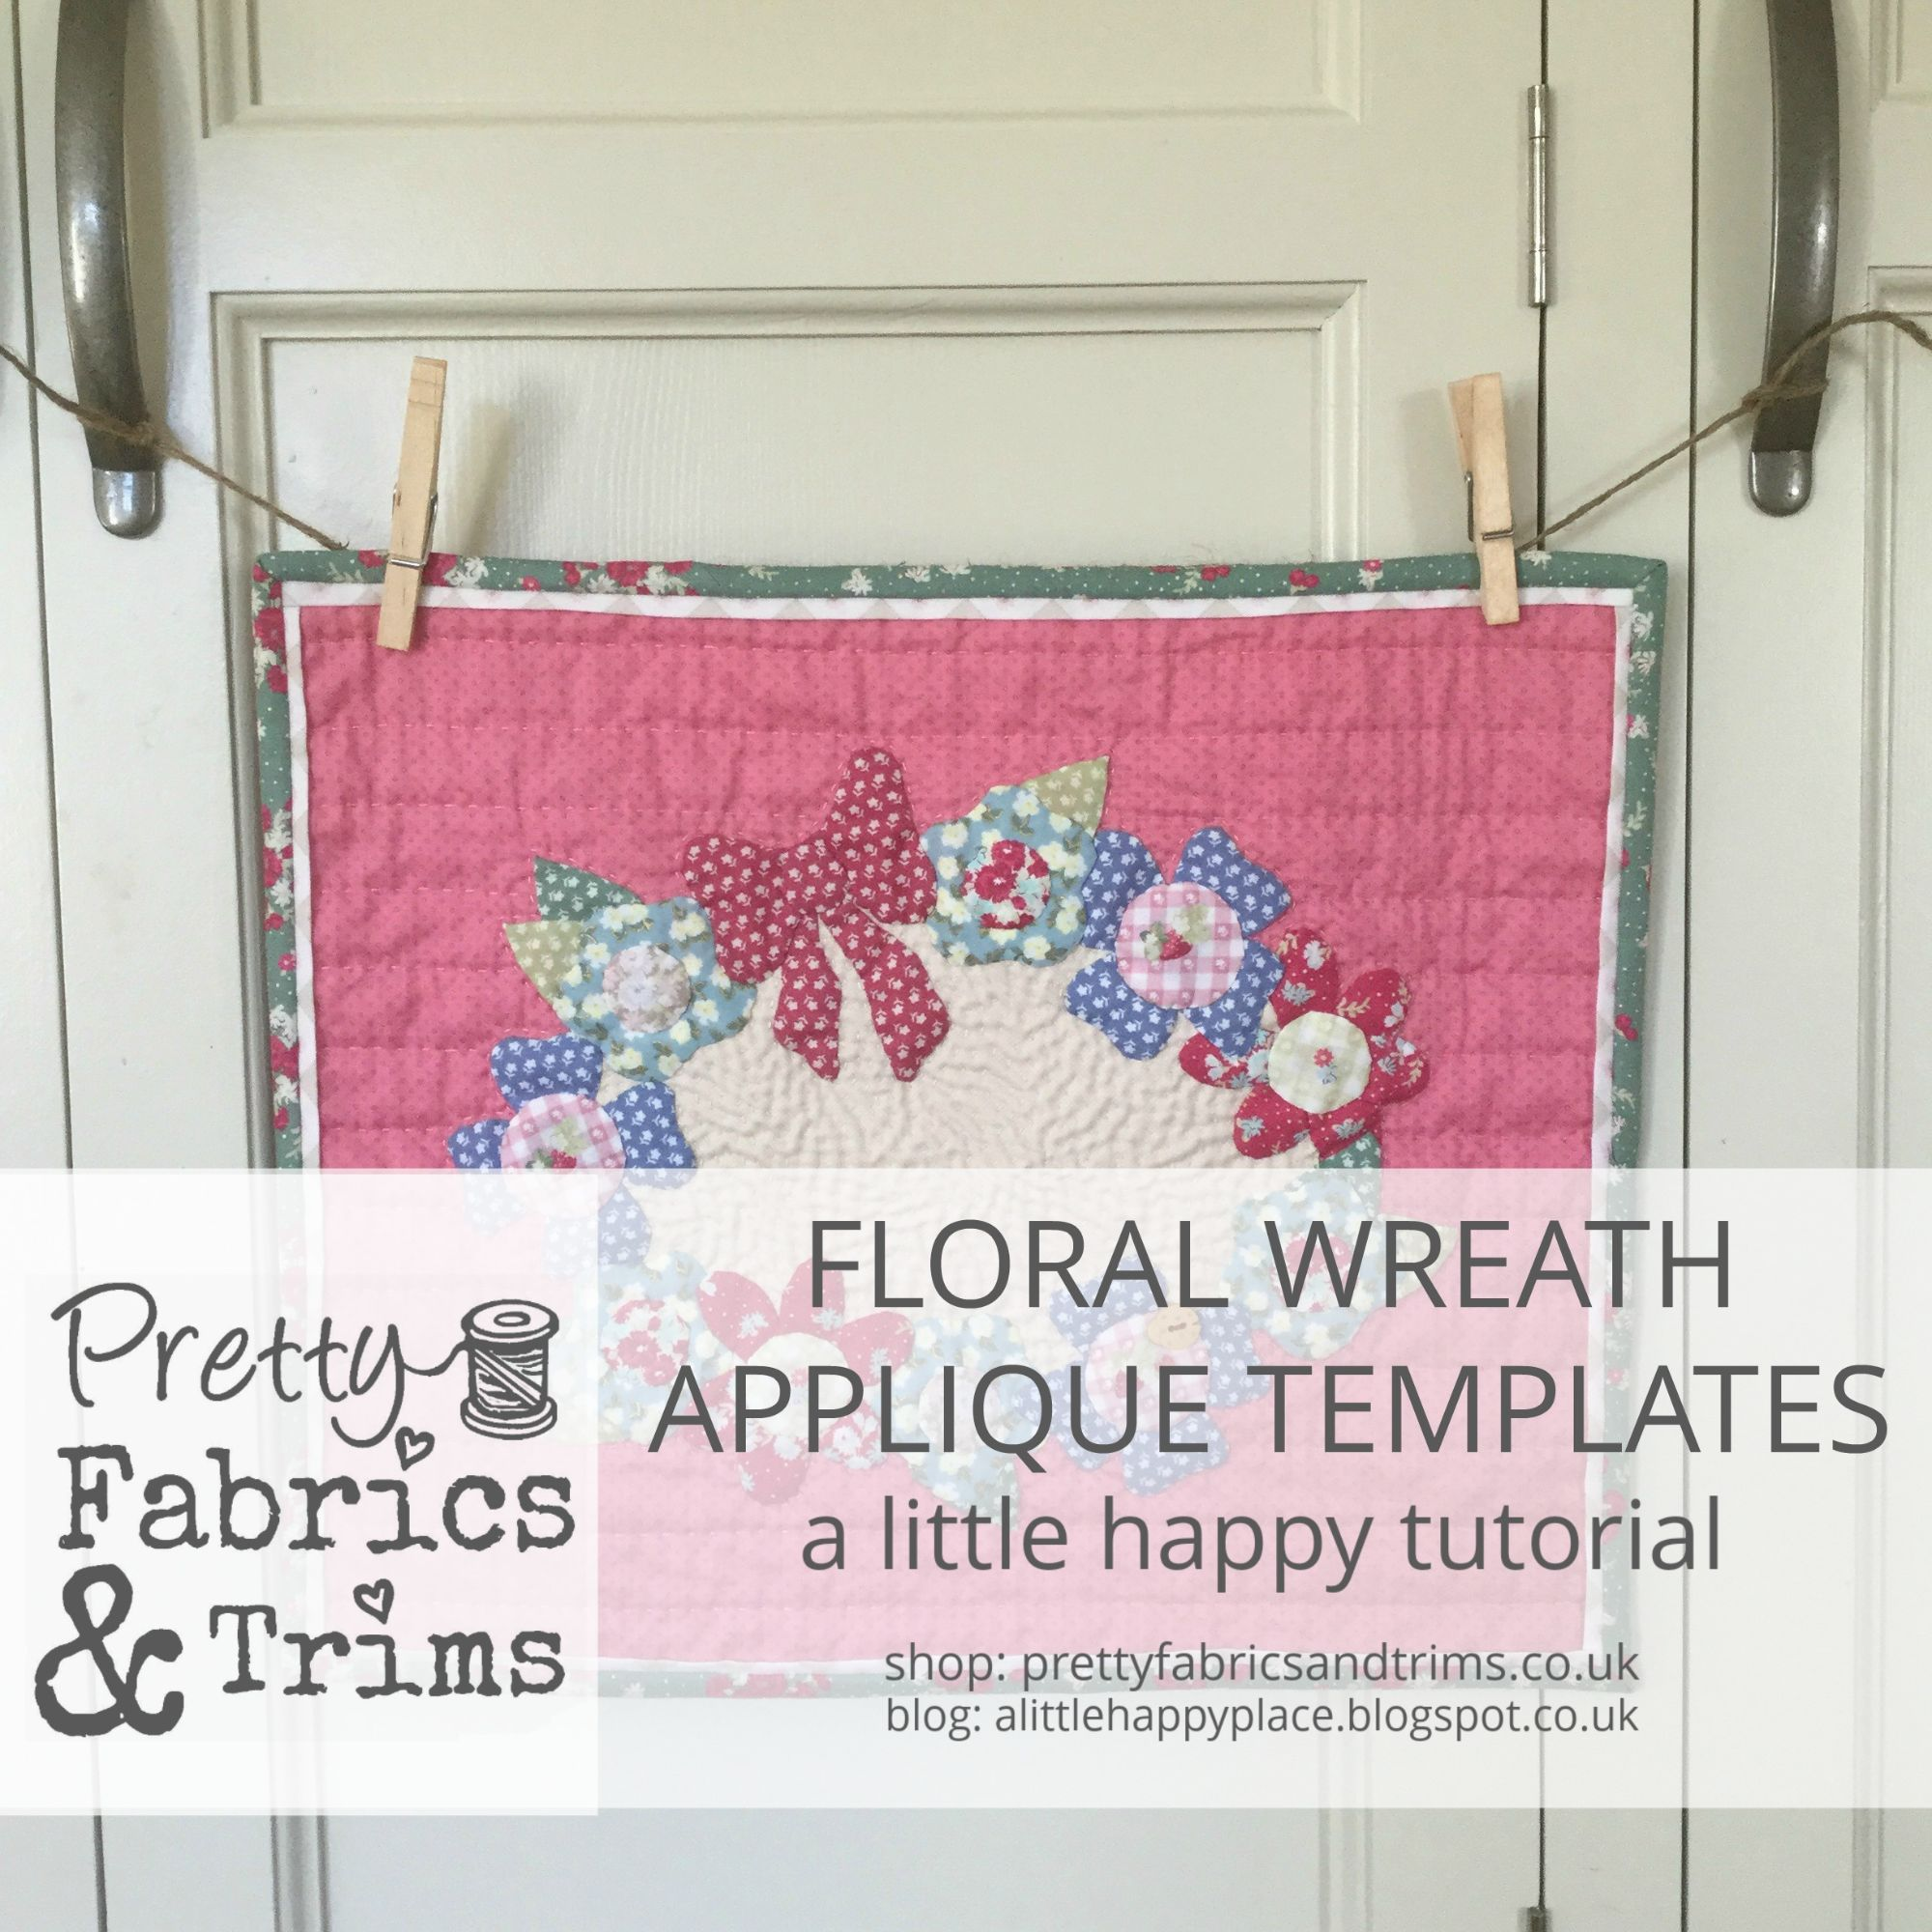 Floral Wreath Applique Templates